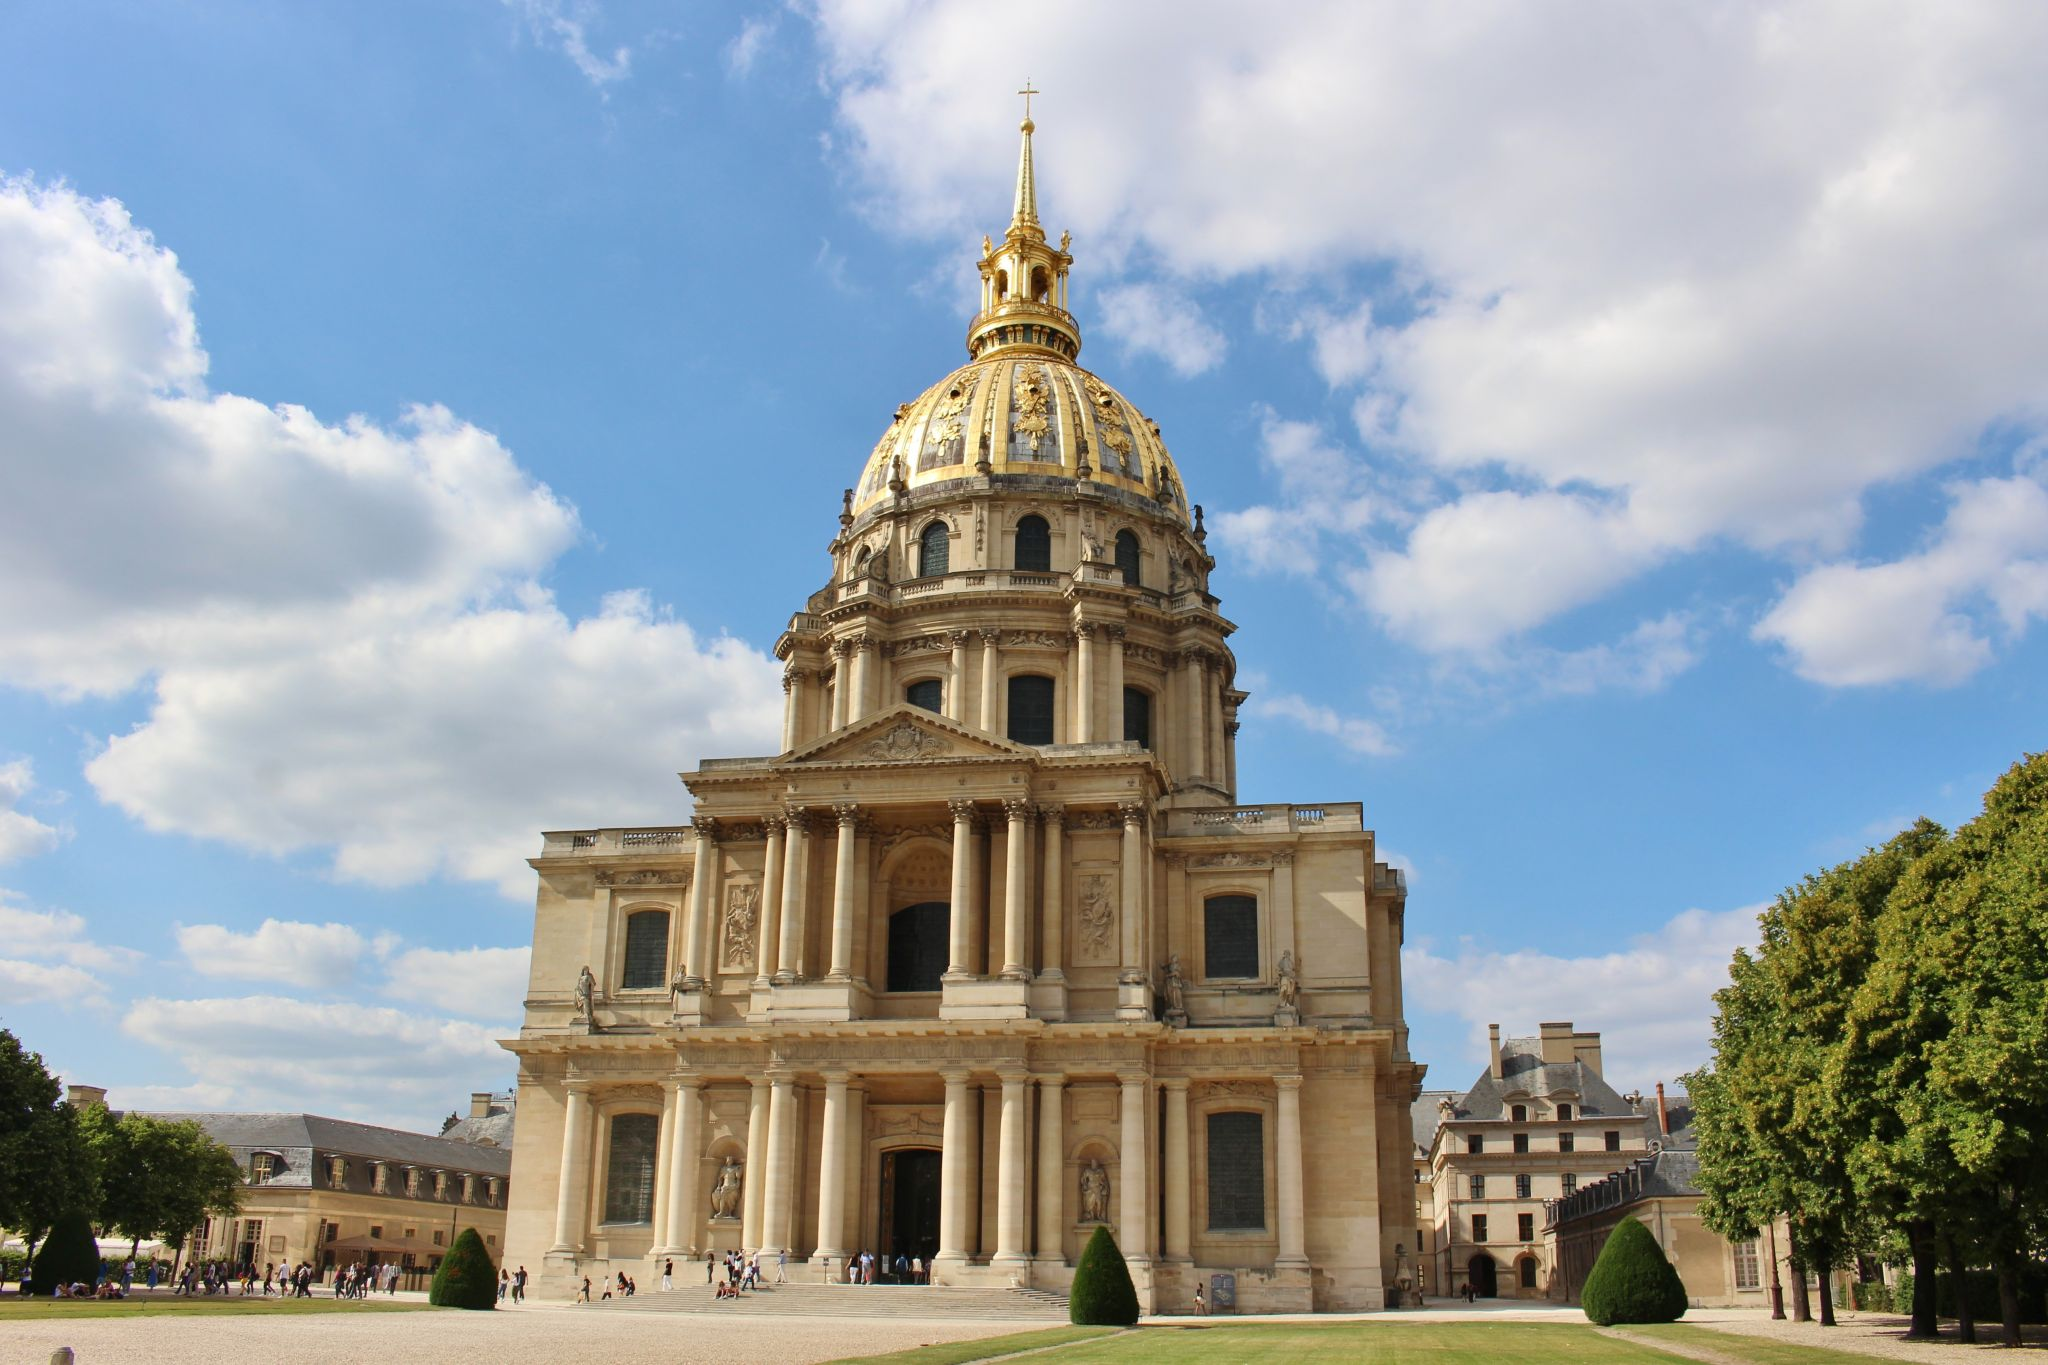 Cathédrale Saint-Louis-des-Invalides, France